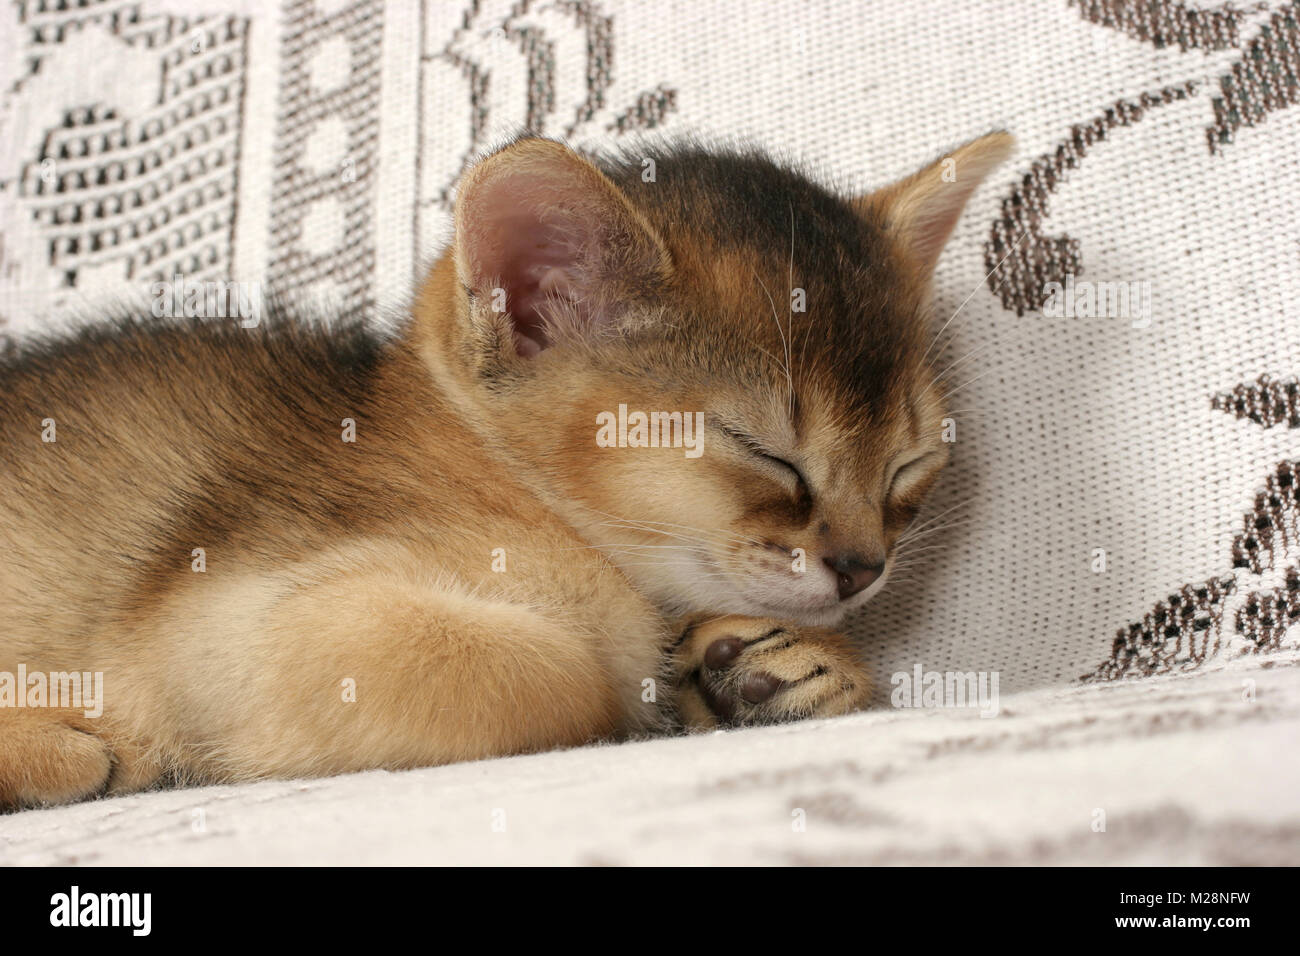 Ruddy Abyssinian Stock Photos & Ruddy Abyssinian Stock Images - Alamy